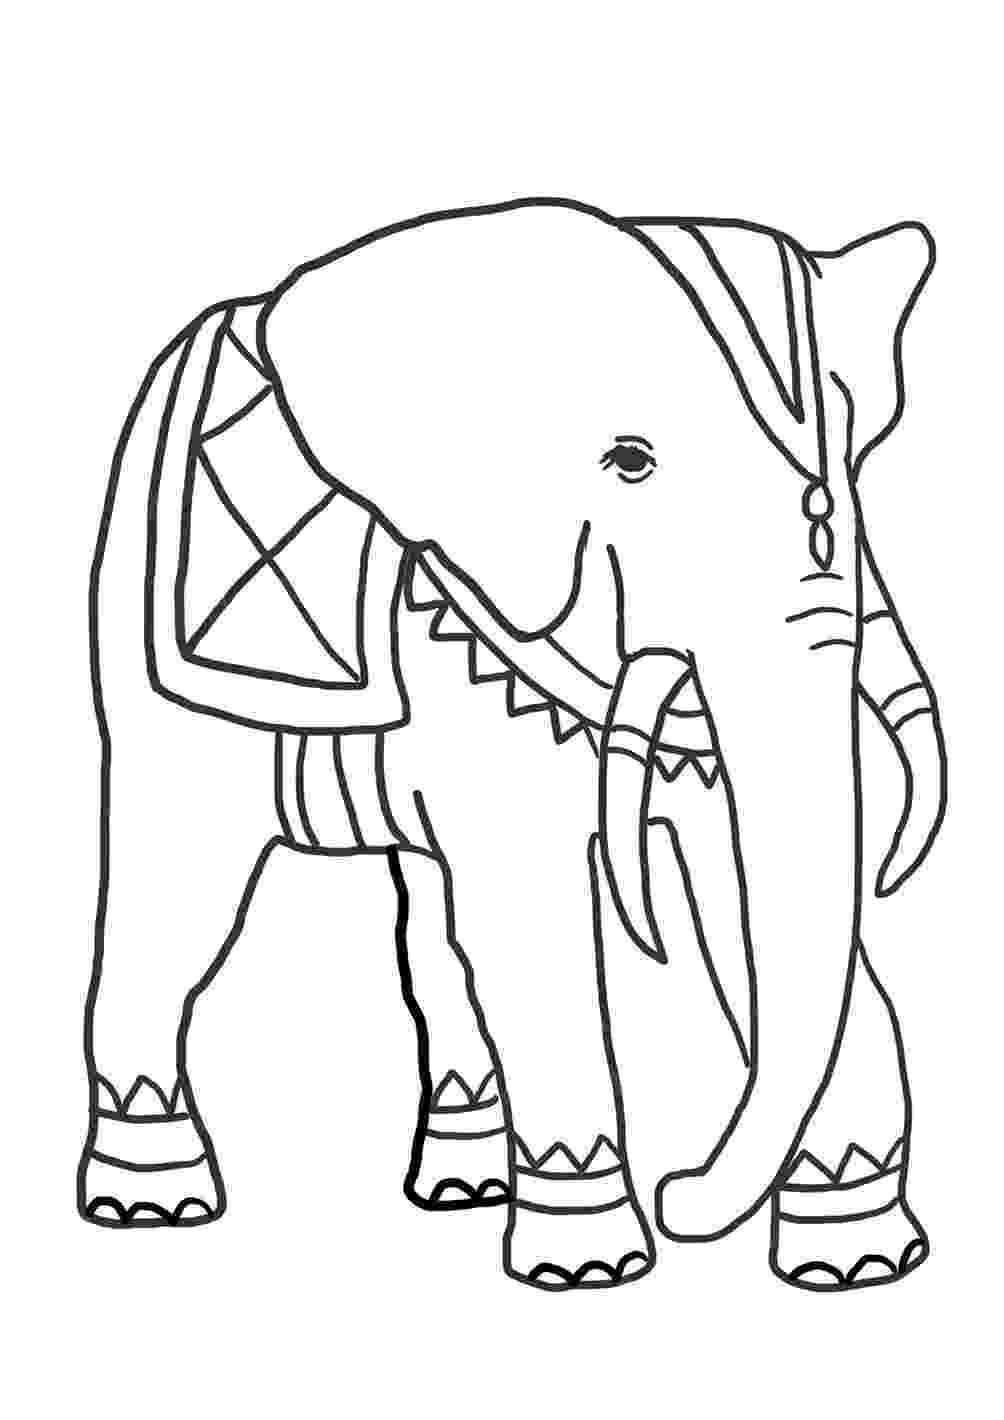 elephant color sheet elephant coloring pages for kids printable for free color sheet elephant 1 1